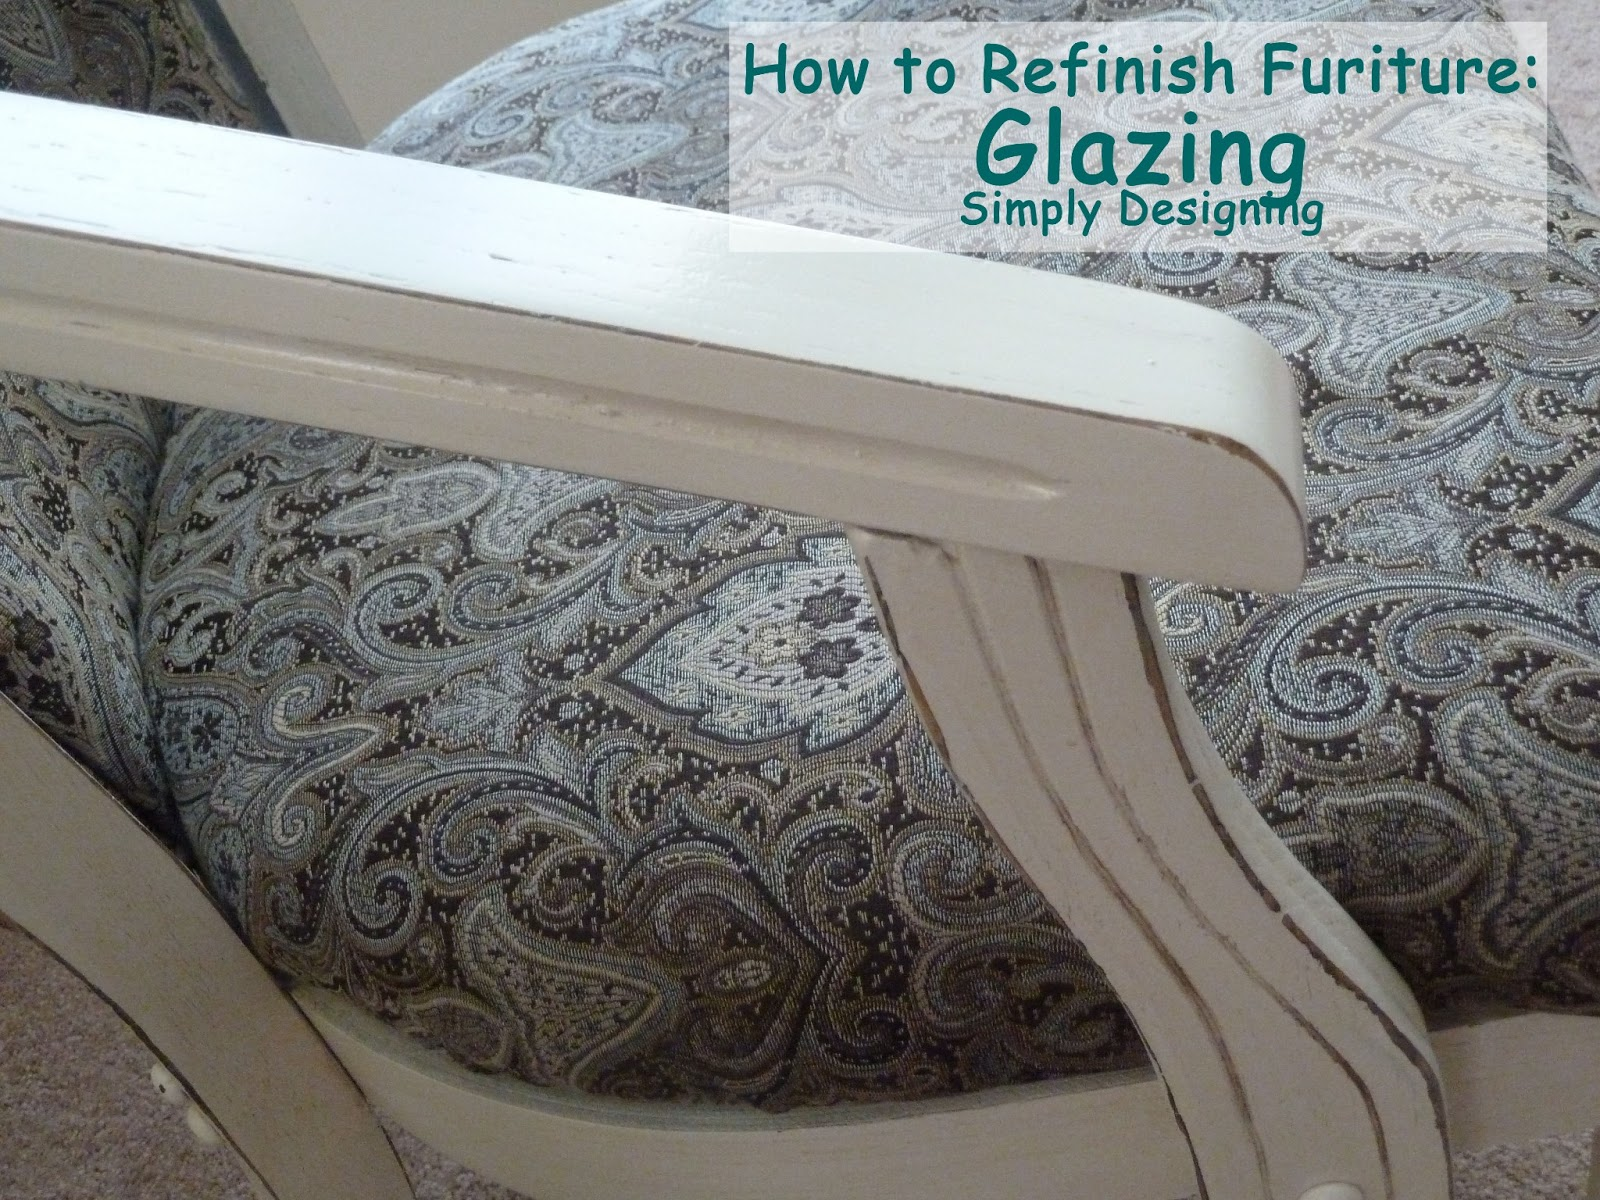 How to refinish furniture glazing for How to refinish furniture with paint